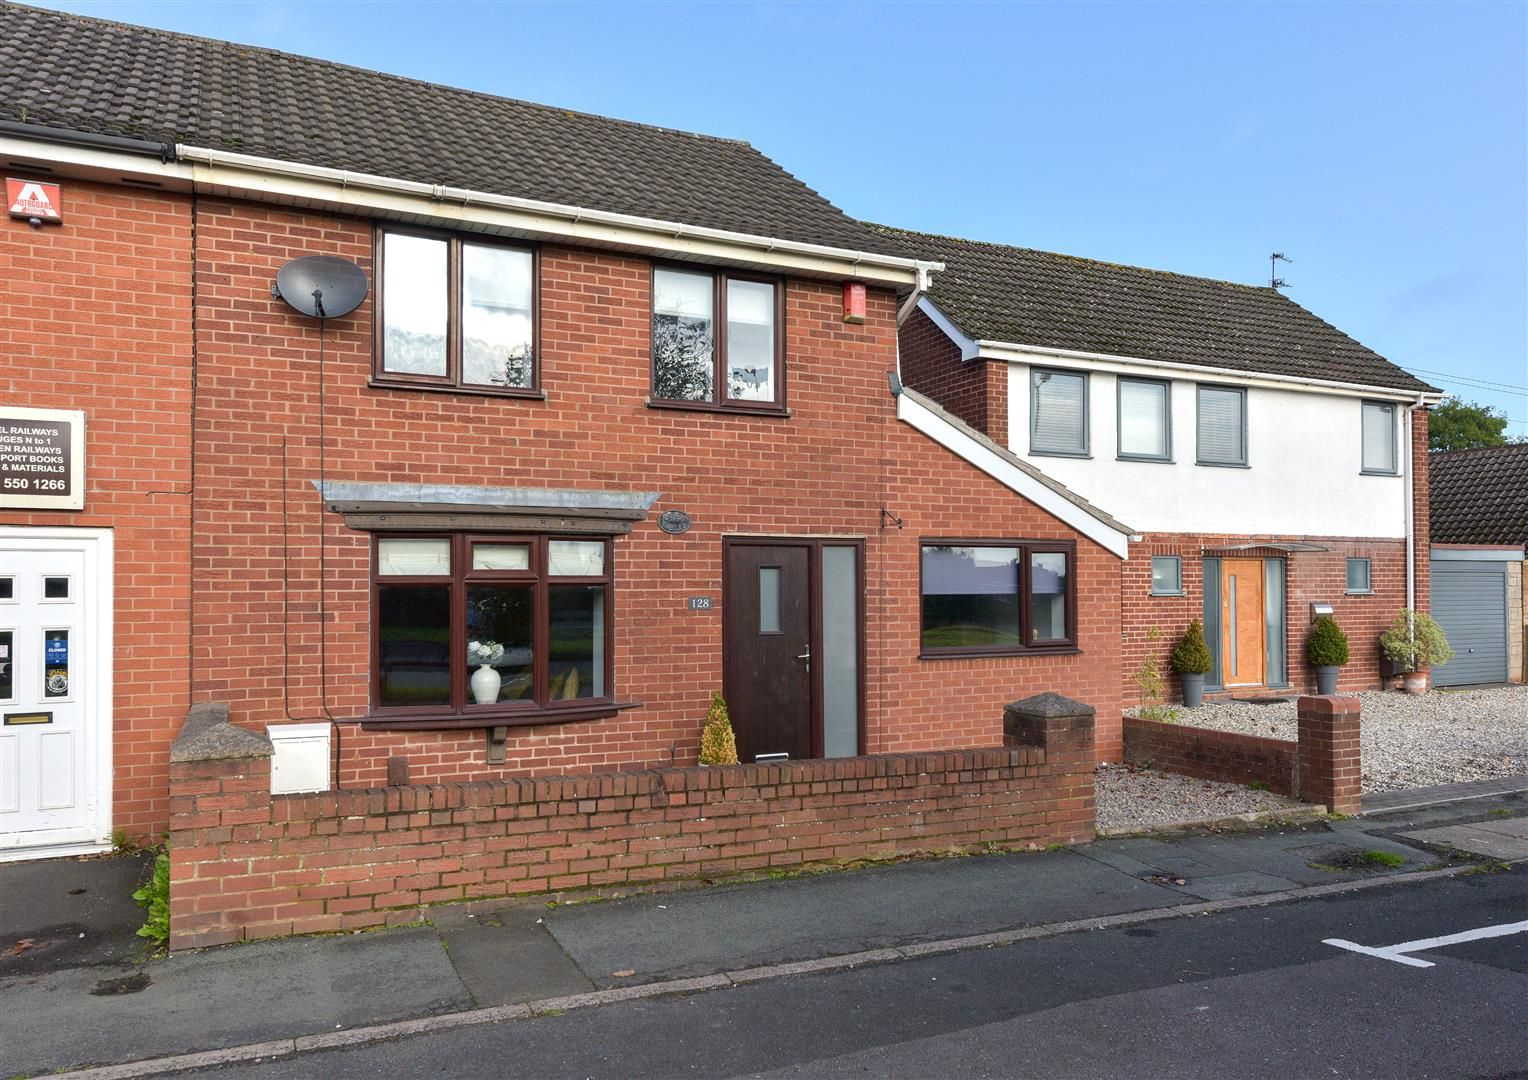 3 bed semi-detached for sale in Hayley Green  - Property Image 1